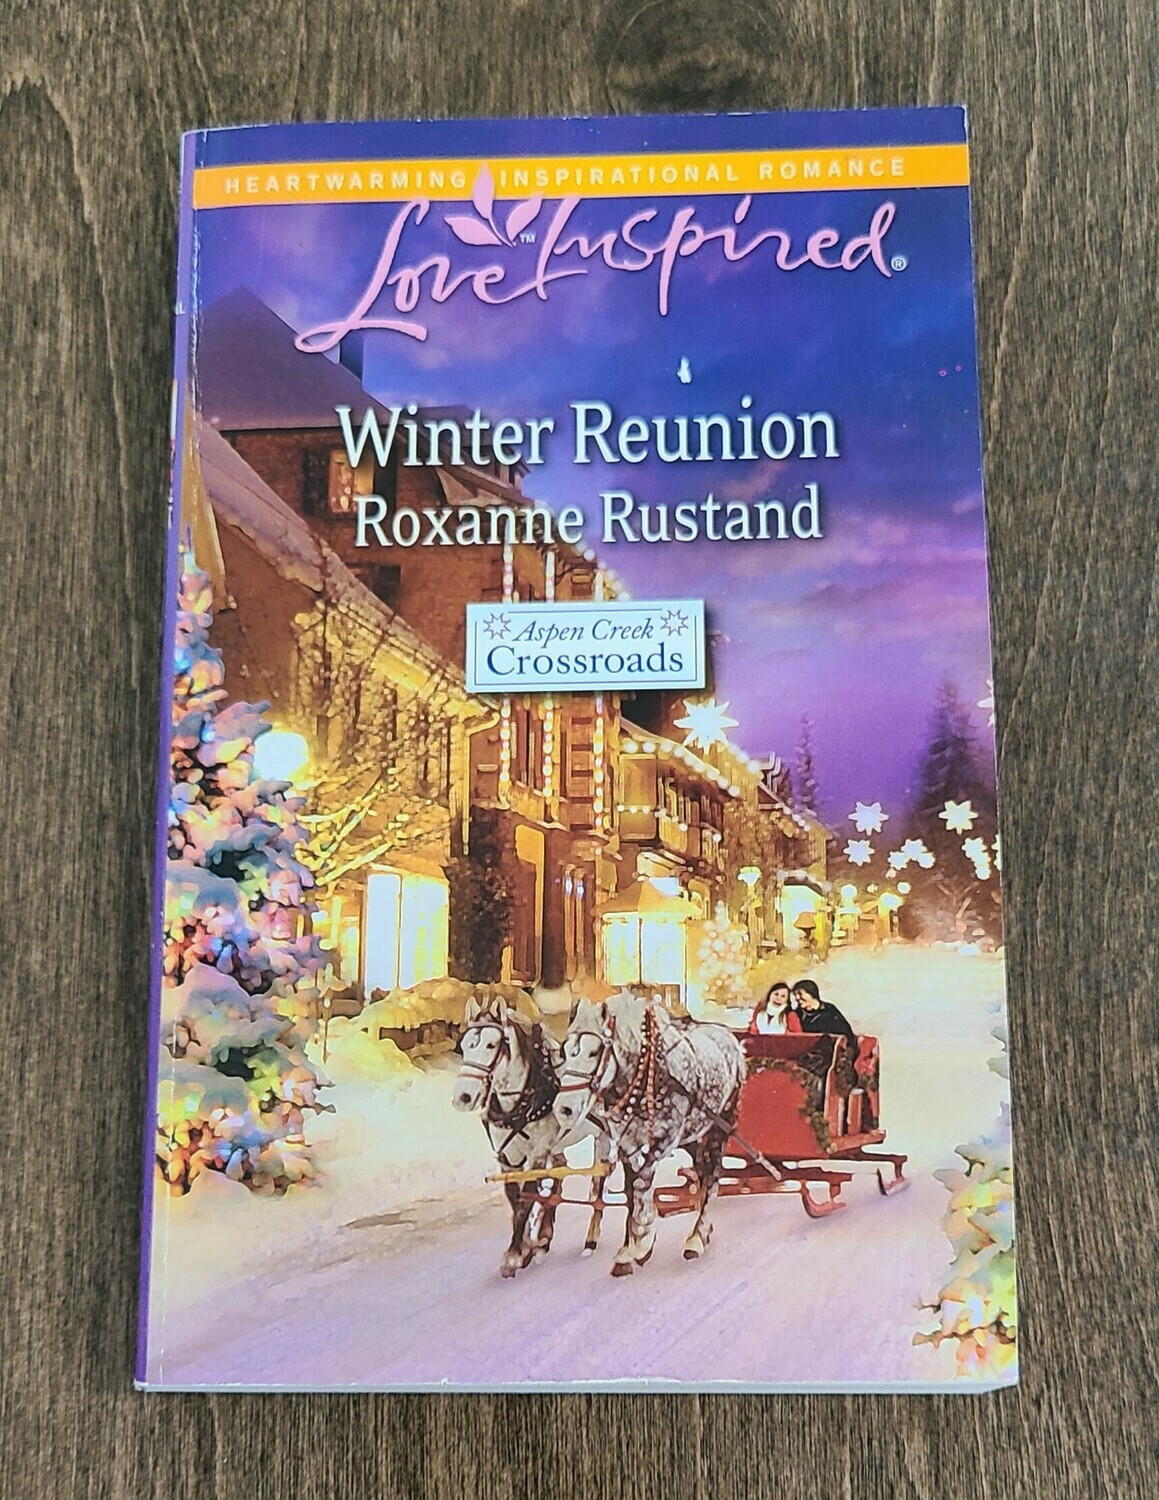 Winter Reunion by Roxanne Rustand